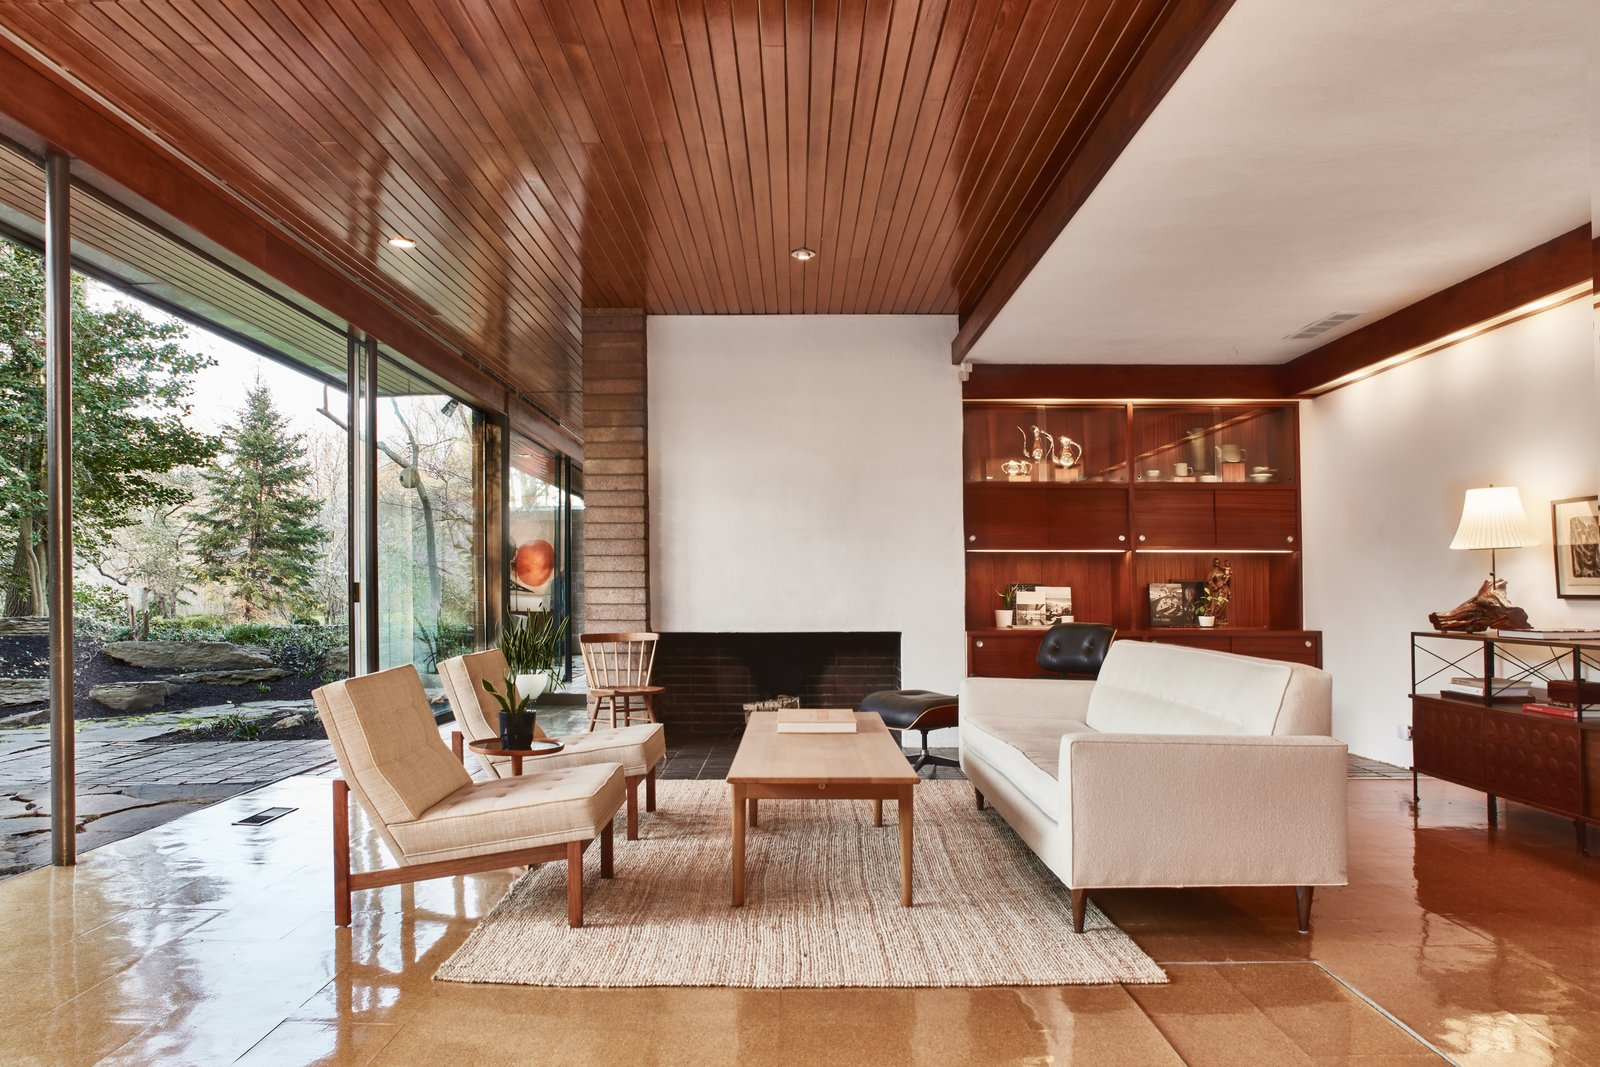 Living Room, Chair, Sofa, Recessed Lighting, and Standard Layout Fireplace  Photo 2 of 13 in The Stunningly Restored Hassrick Residence by Richard Neutra Hits the Market at $2.2M